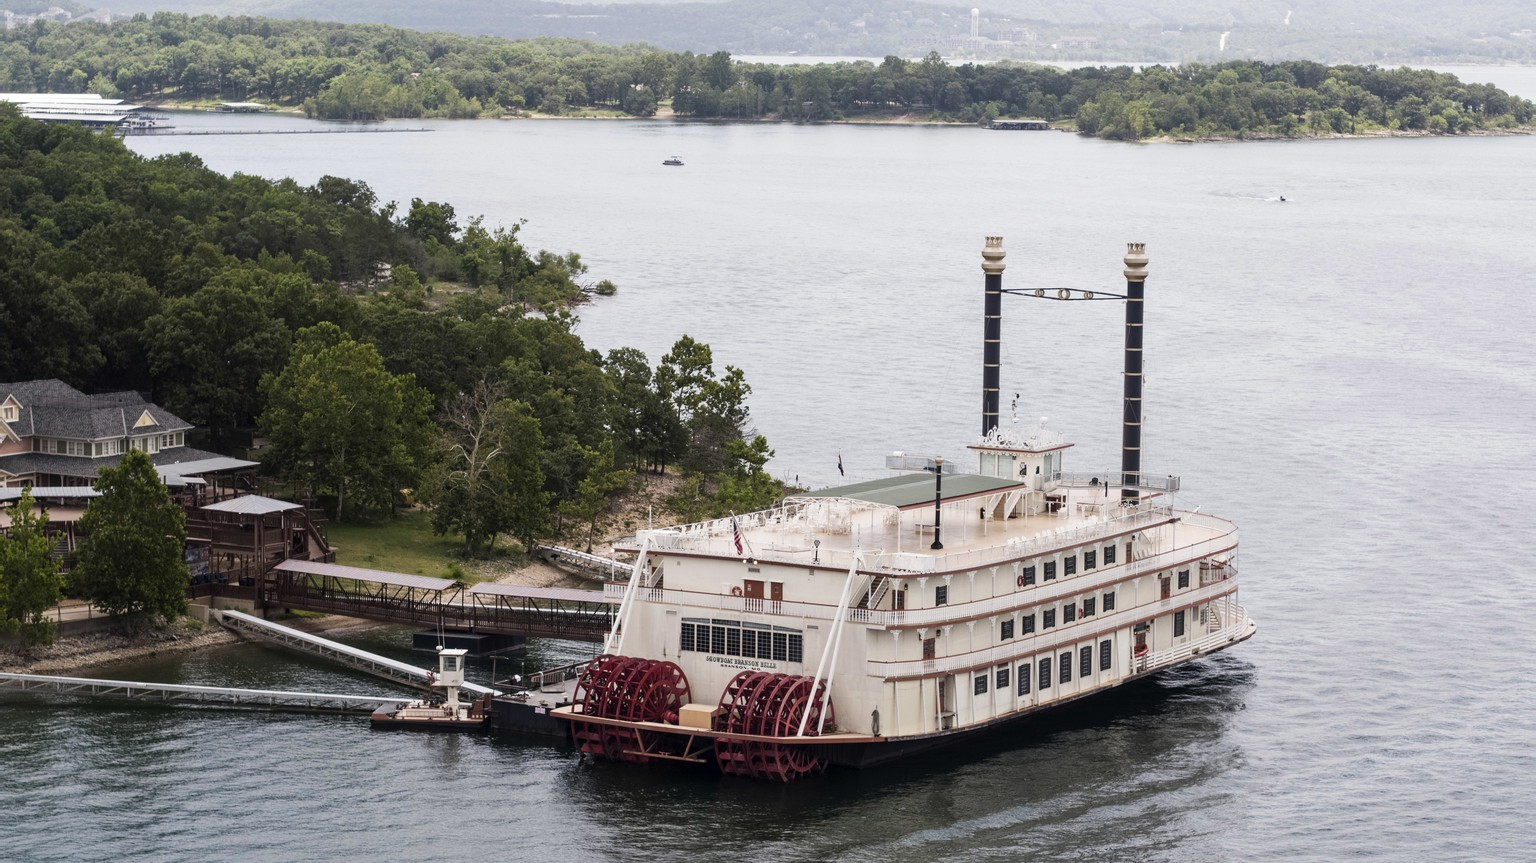 This photo shows a Showboat Branson Belle riverboat docked on Table Rock Lake near Branson, Mo., Friday, July 20, 2018, a day after a duck boat capsized and sank in the lake. Stone County Sheriff Doug Rader said Friday an off-duty deputy aboard a nearby Showboat Branson Belle and others on the riverboat jumped in to help the duck boat's passengers. He described the rescue effort as